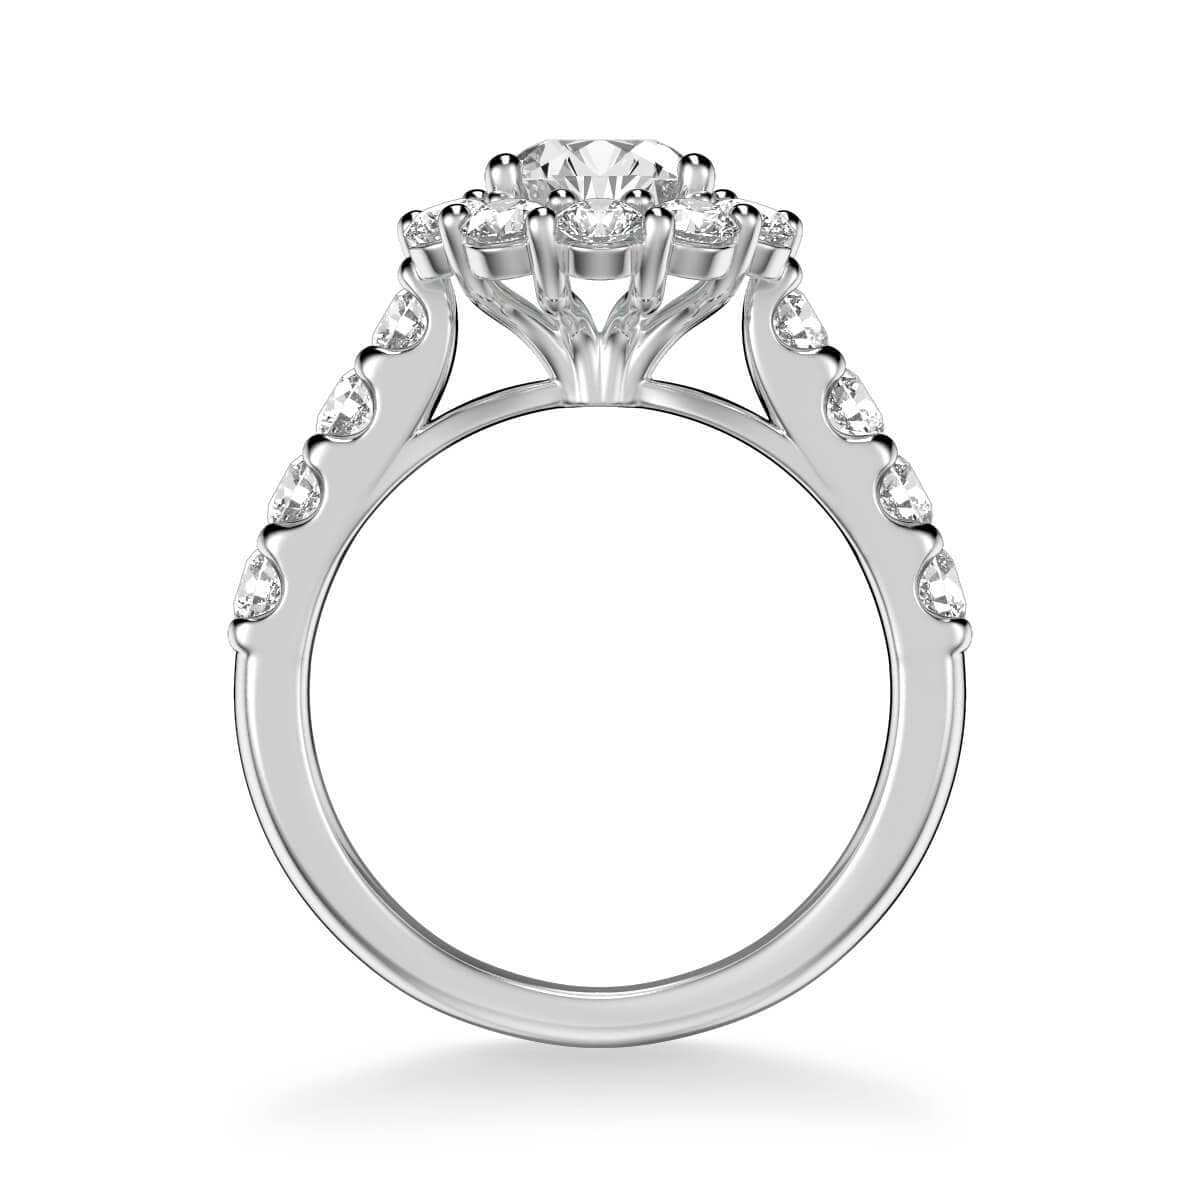 Wynona Classic Round Halo Diamond Engagement Ring